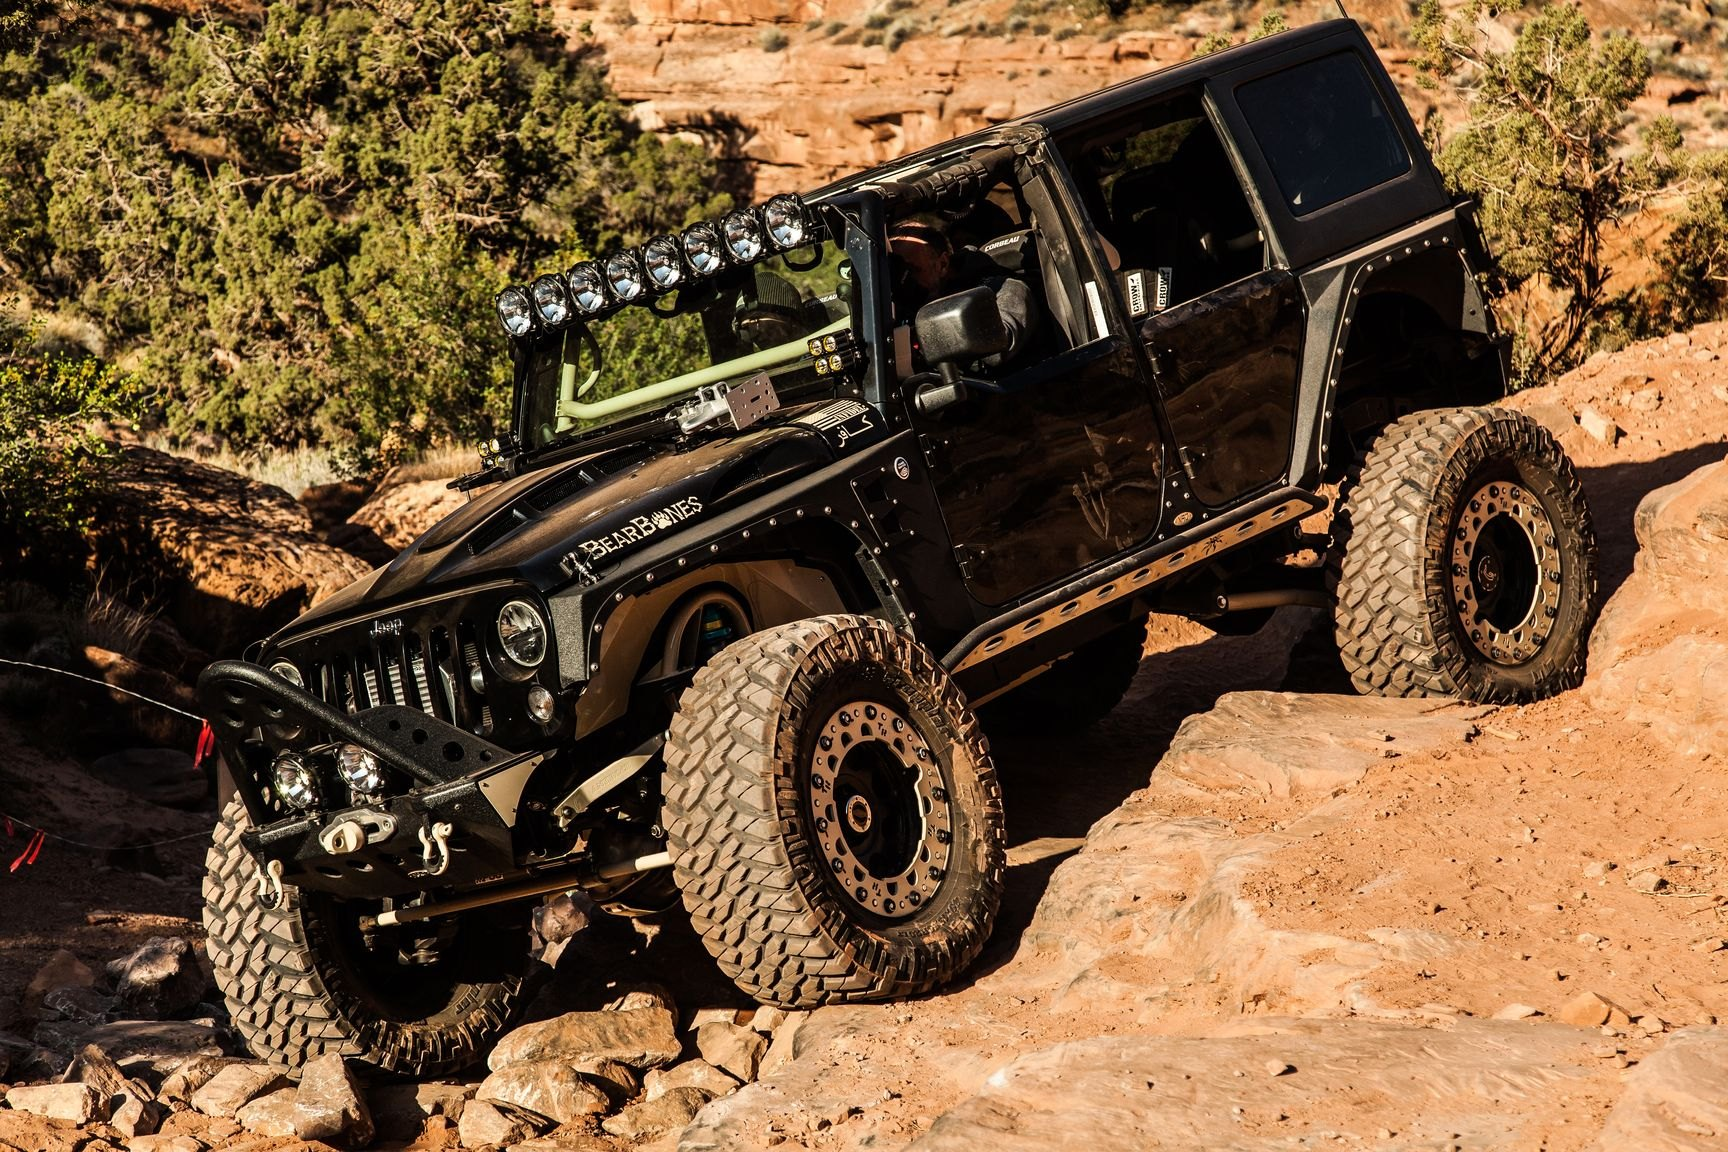 Black Lifted Jeep Wrangler with Windshield LED Lights - Photo by Rebel Off-Road